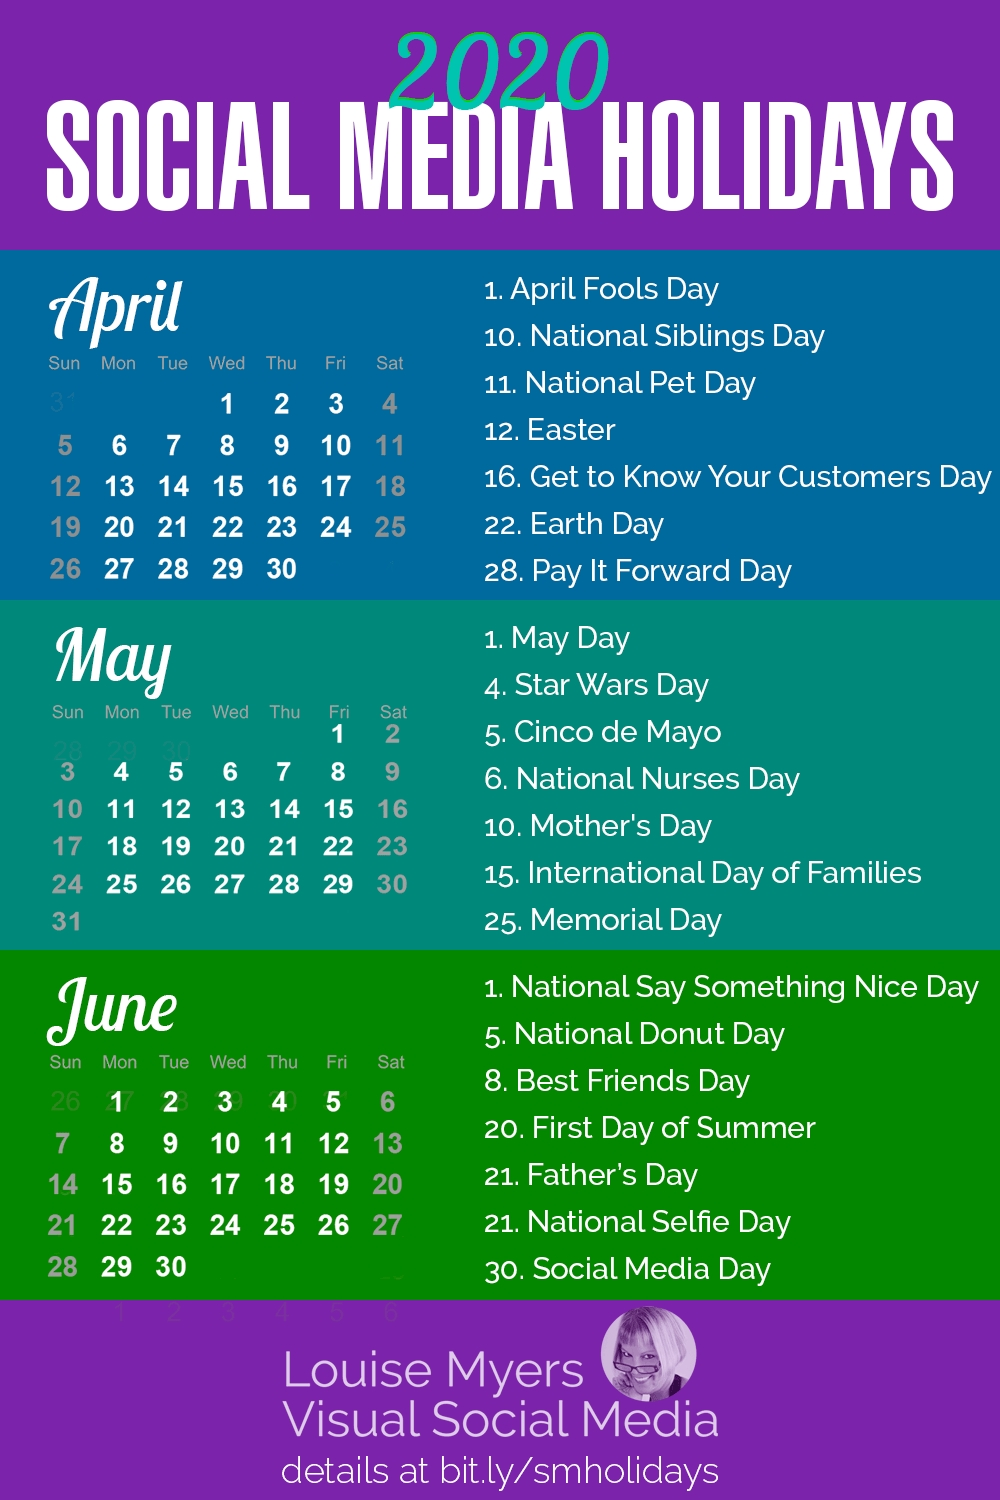 84 Social Media Holidays You Need In 2020: Indispensable! with regard to Special Calendar Days In 2020